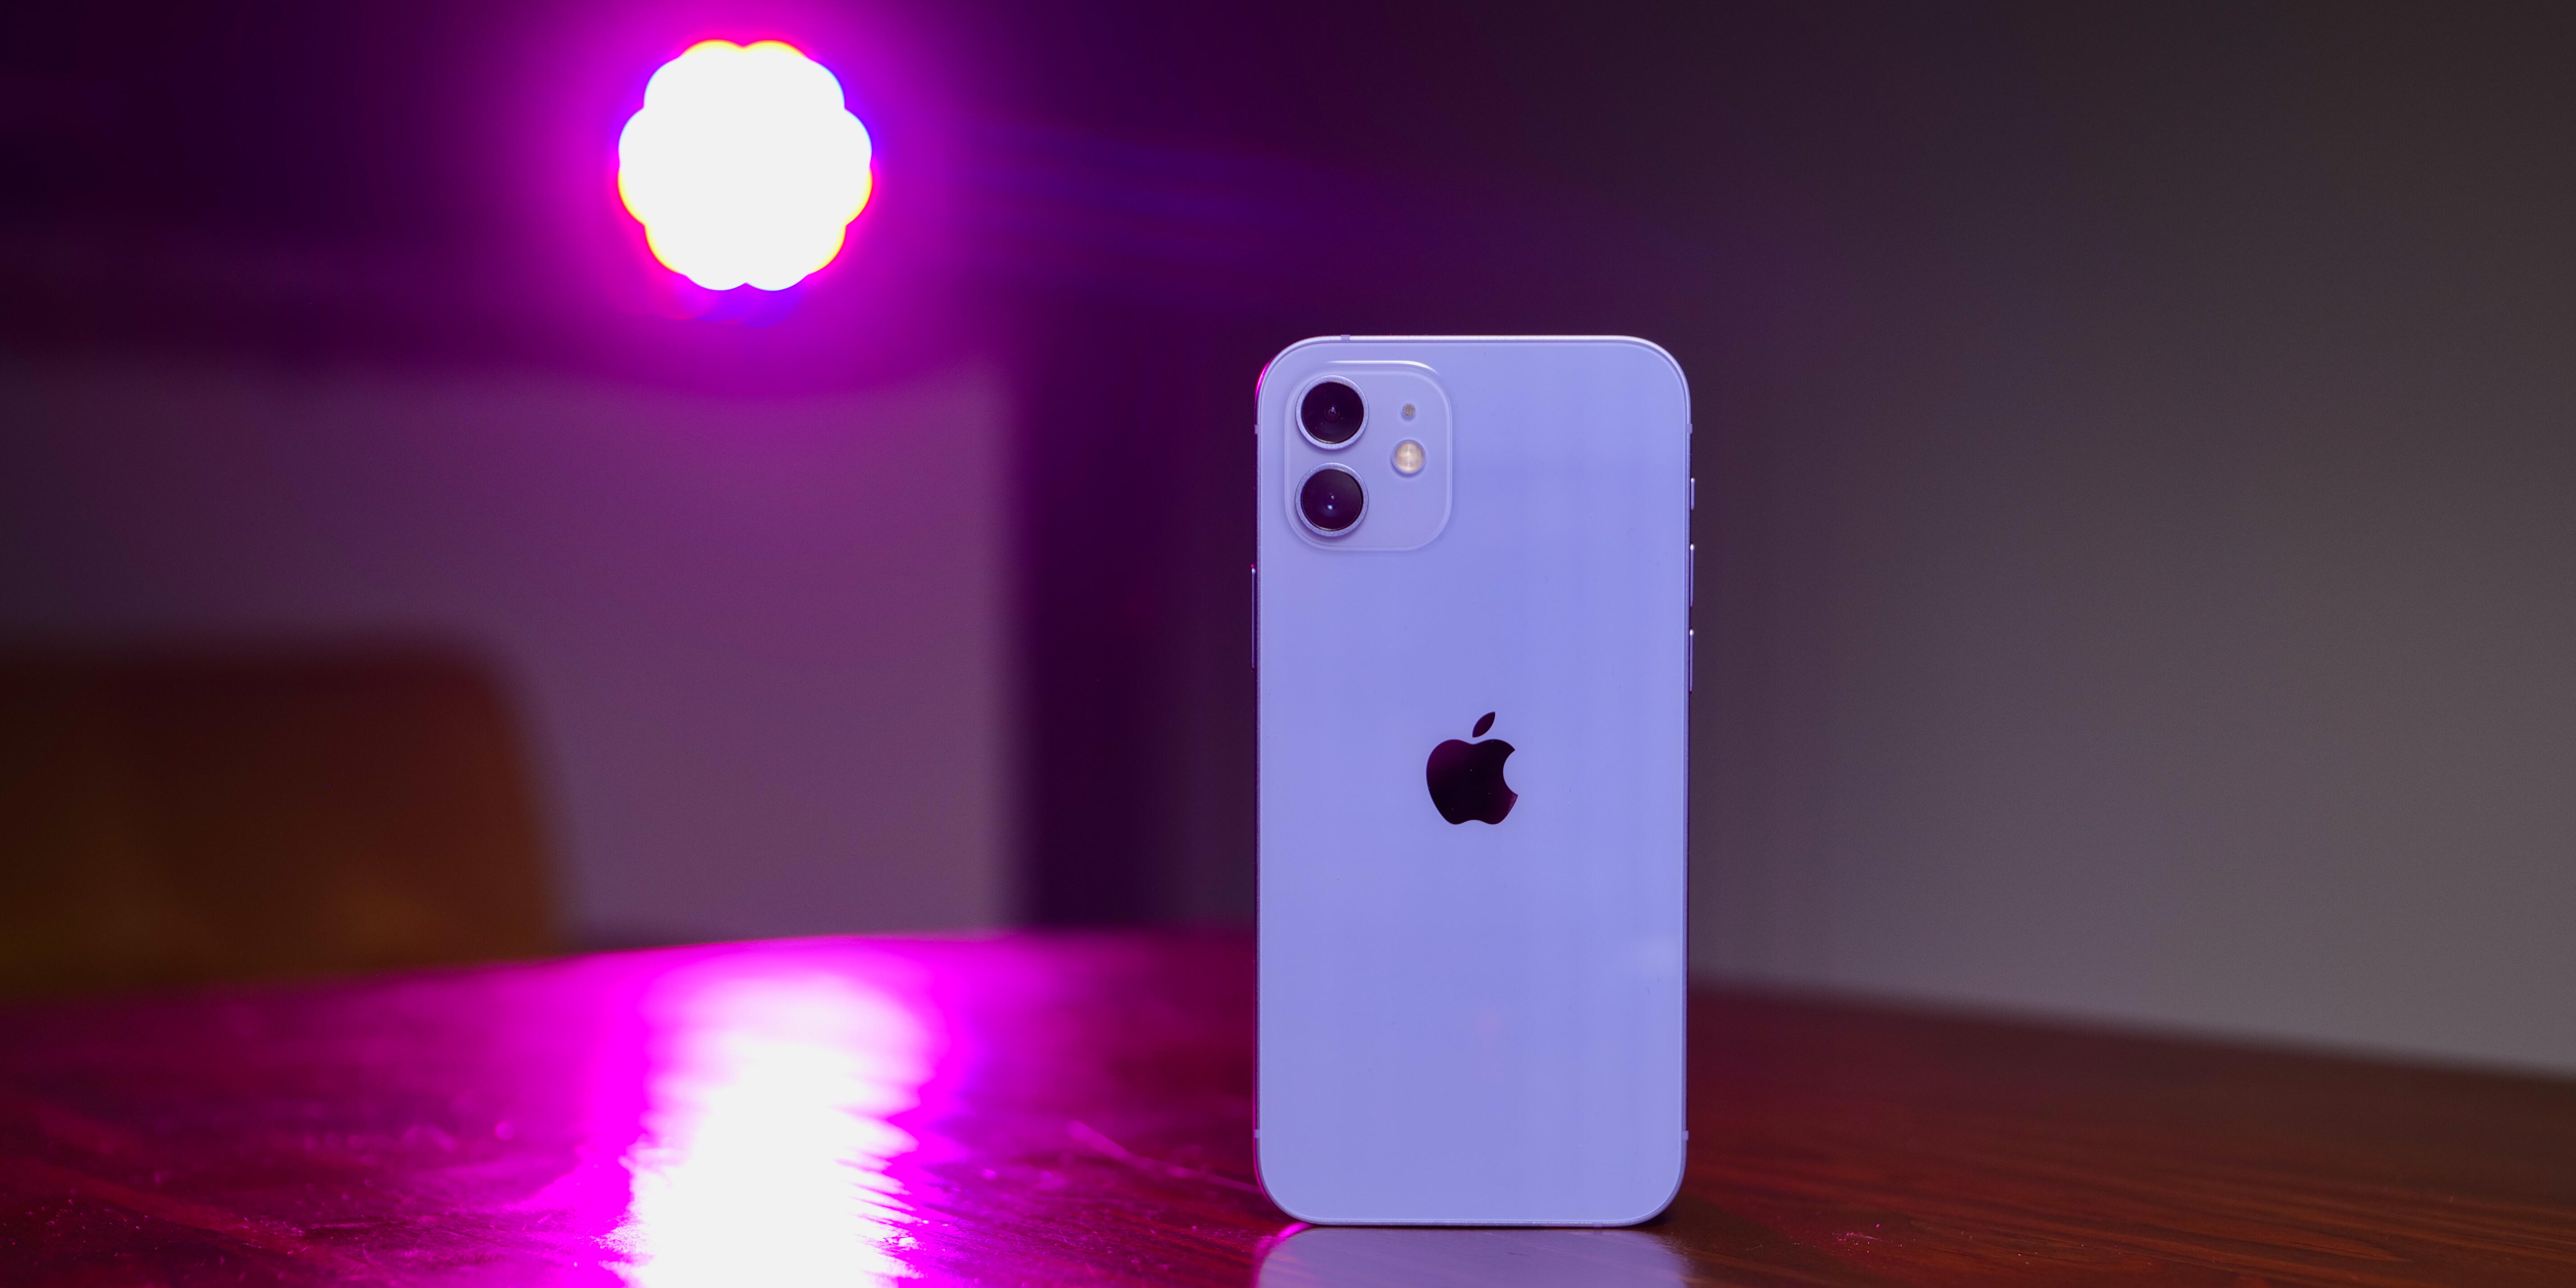 iPhone 12 in purple hands-on: Should you buy it or wait for iPhone 13? - CNET